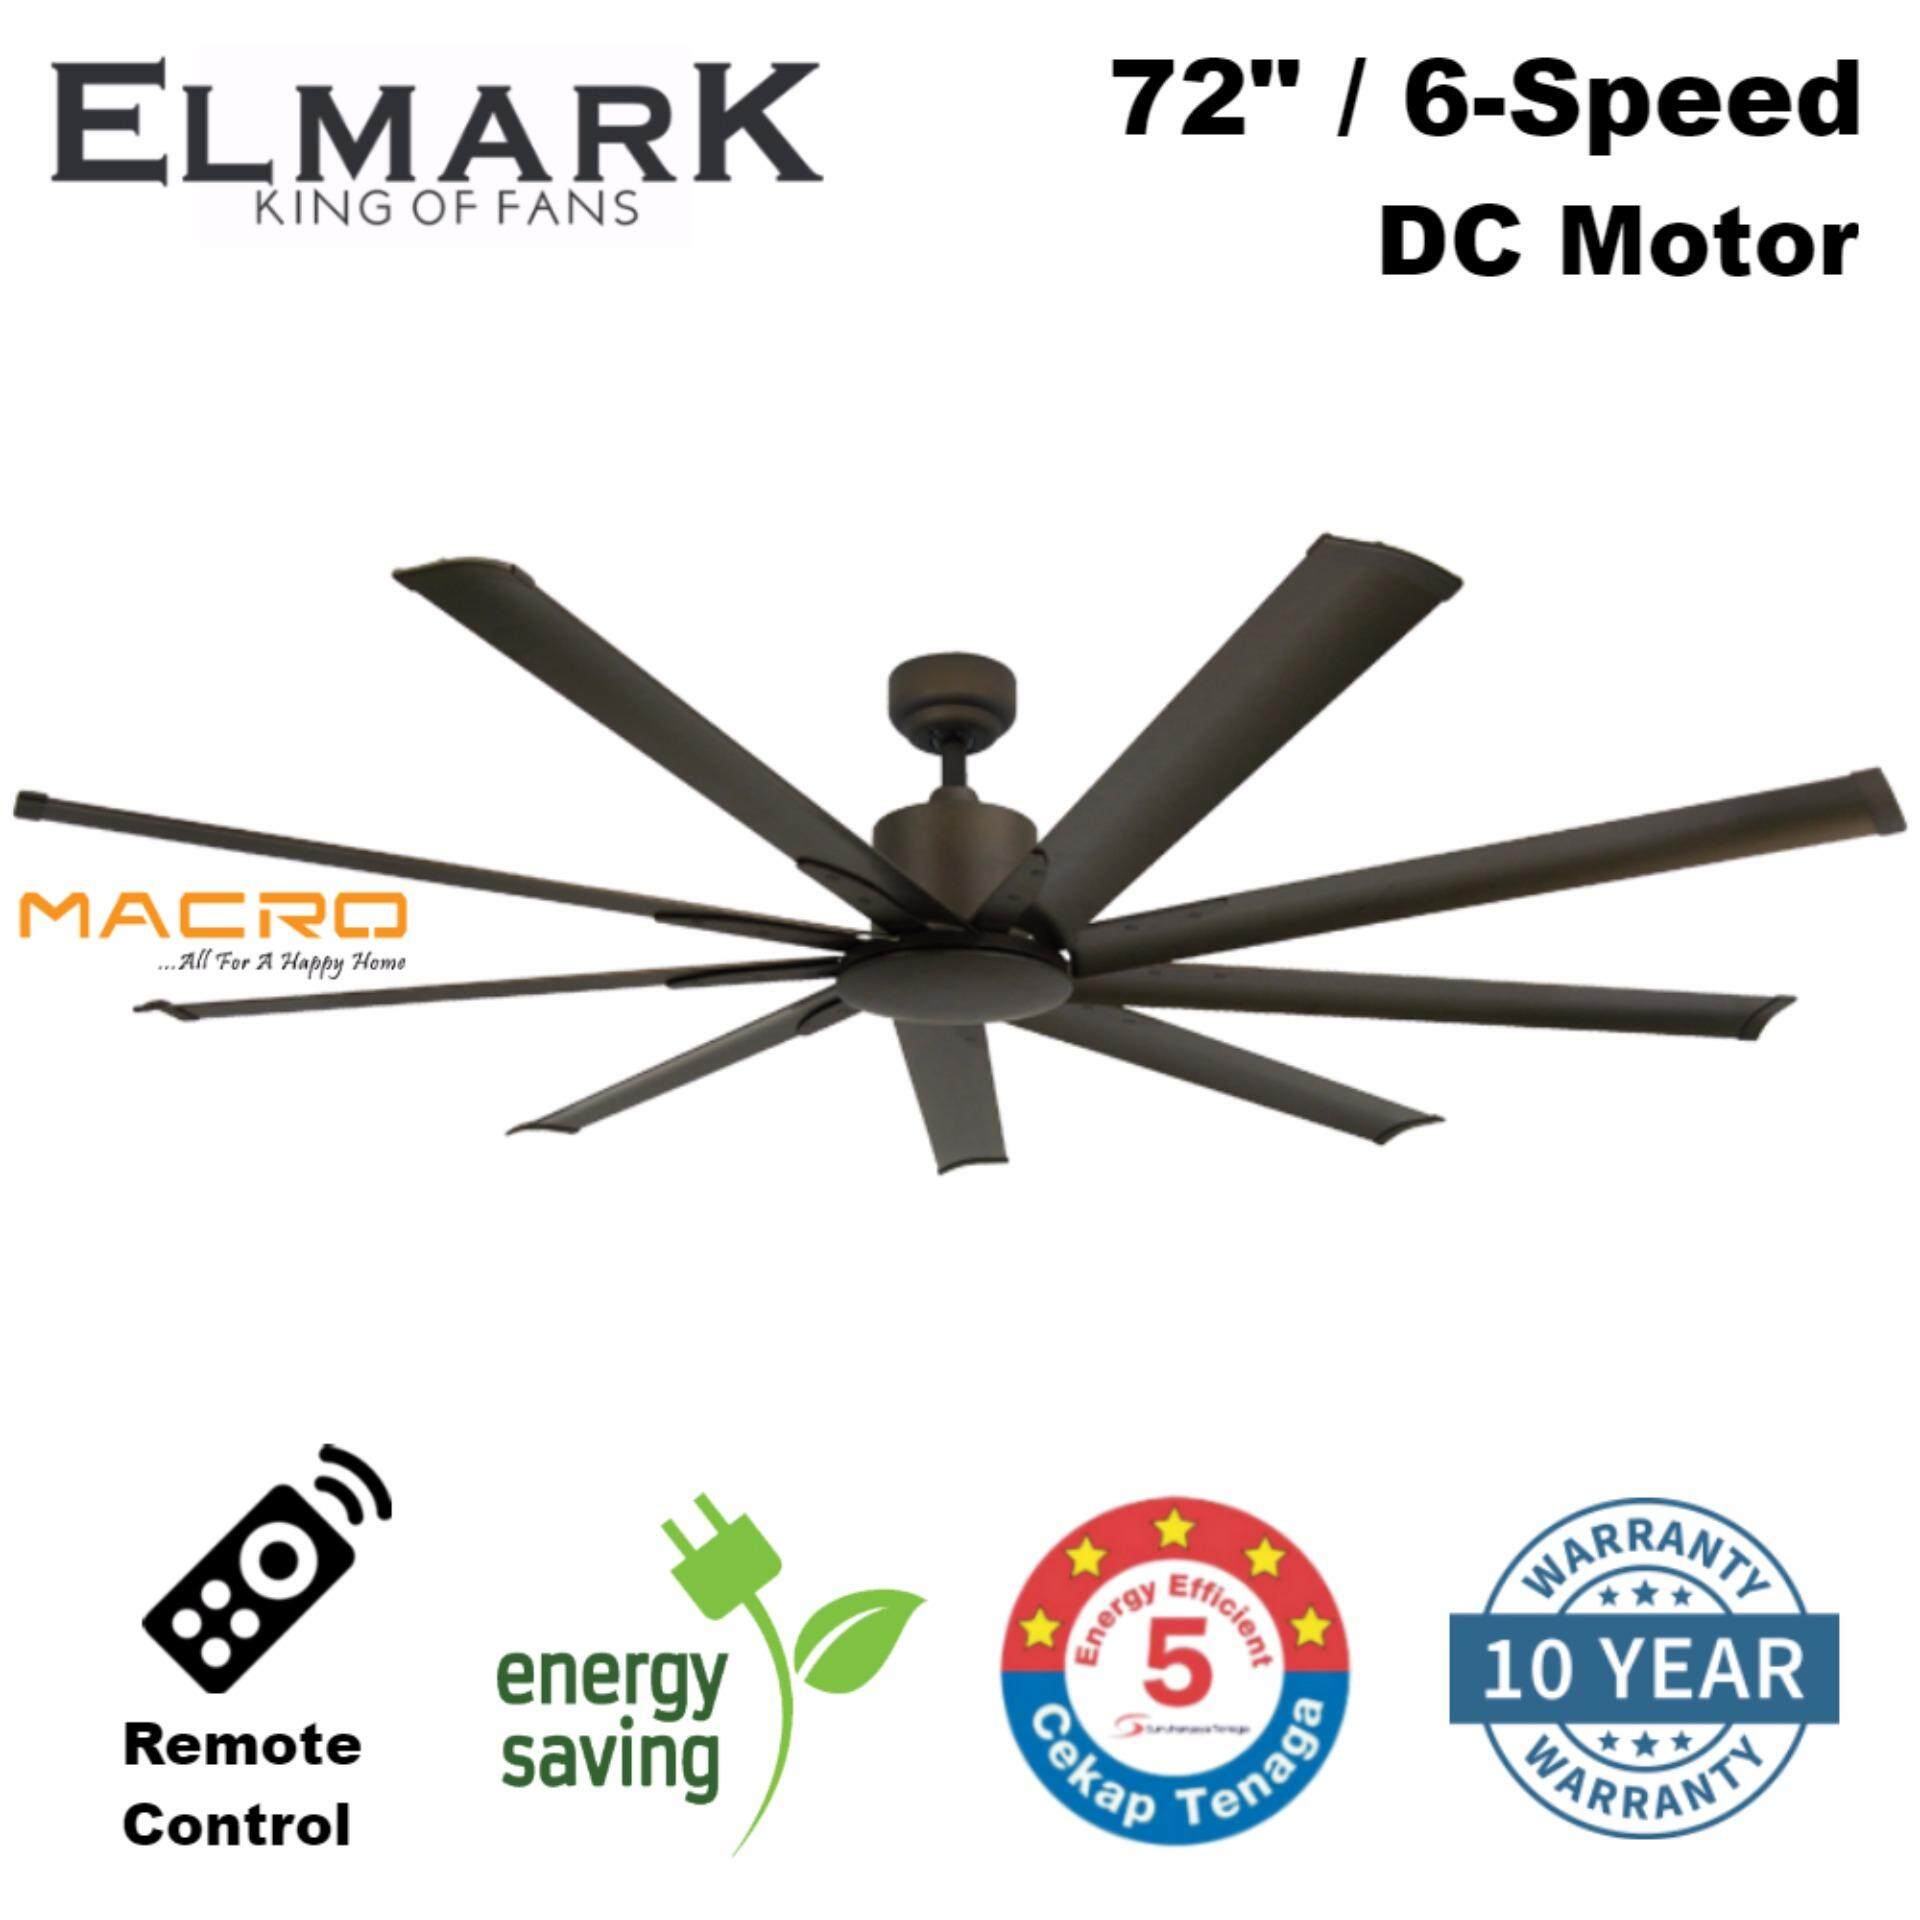 com inch harbor lowes at photos remote lights aikenata ceiling voicesofimani breeze shop troubleshooting sale fan fans luxury complete reliable with